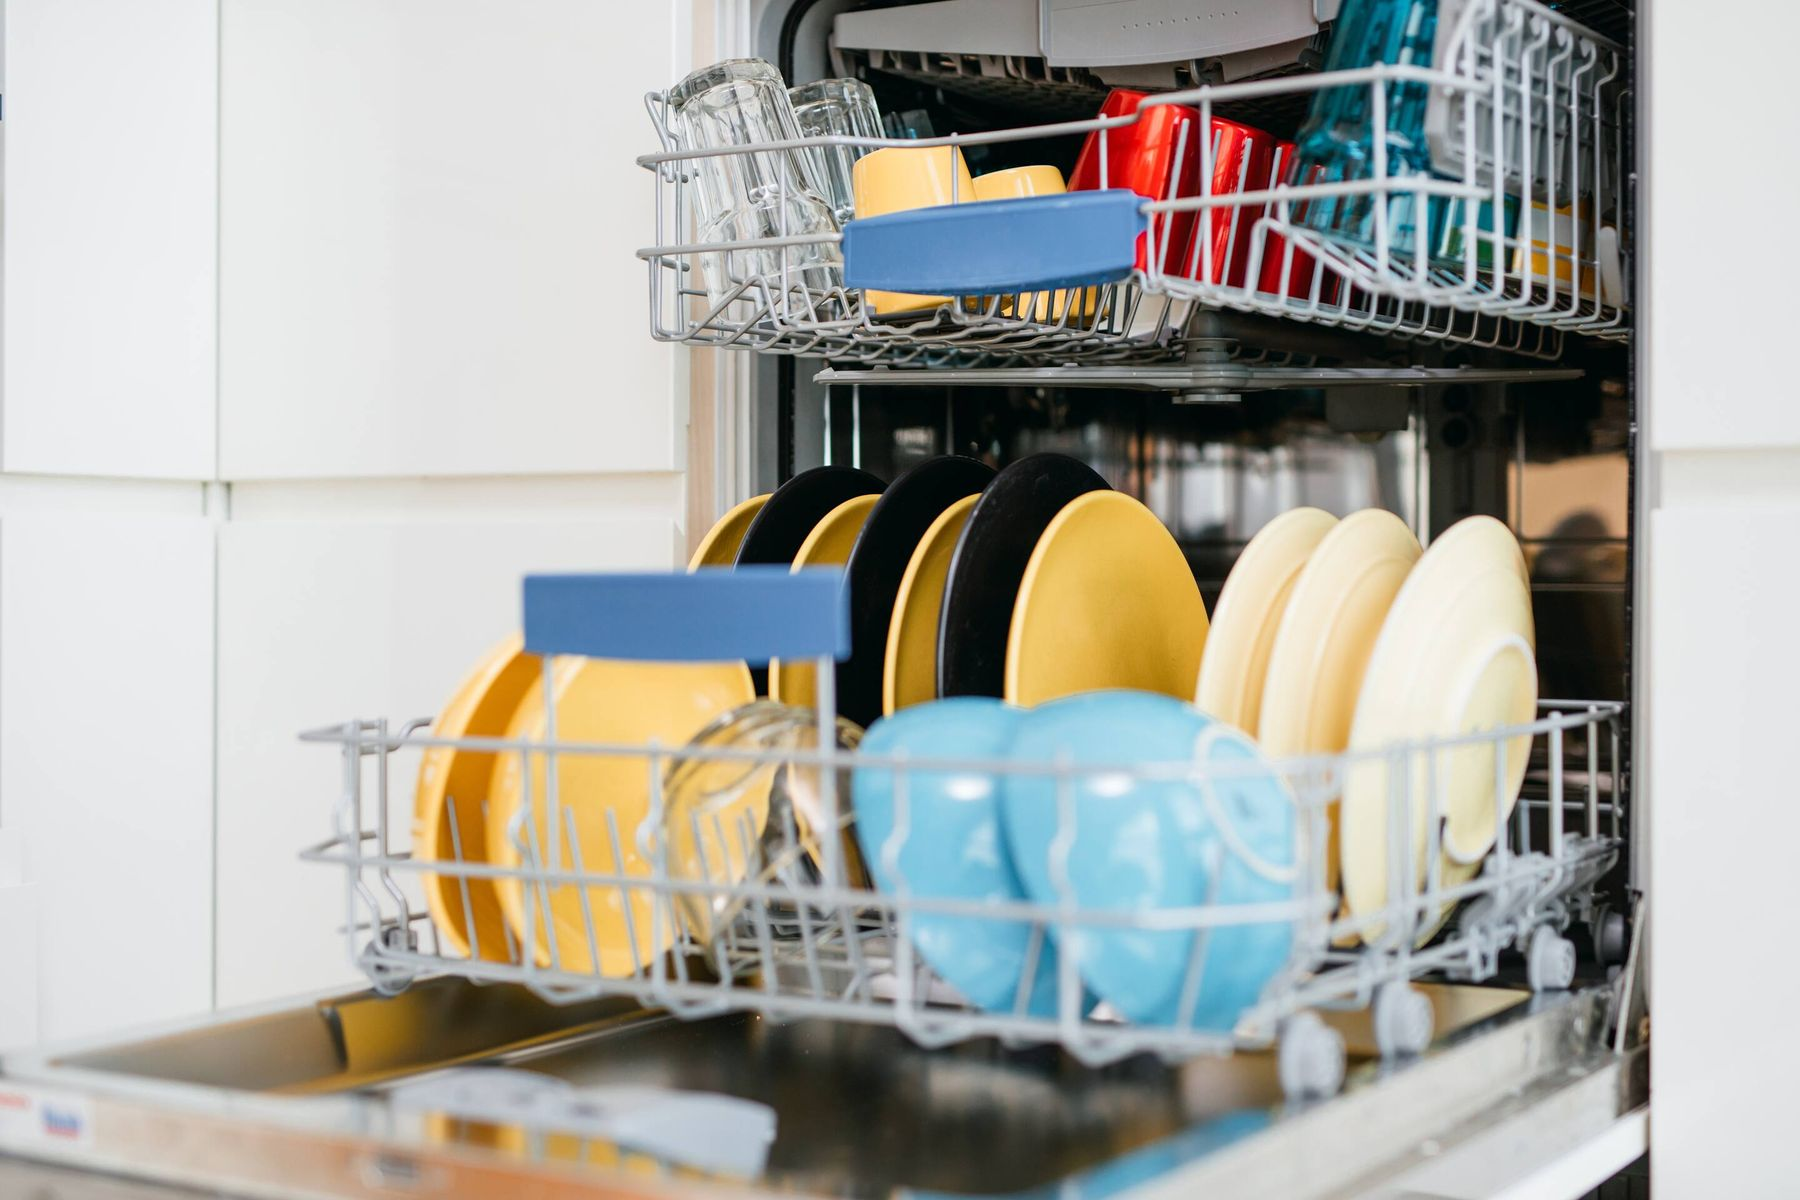 dishes in a dishwasher